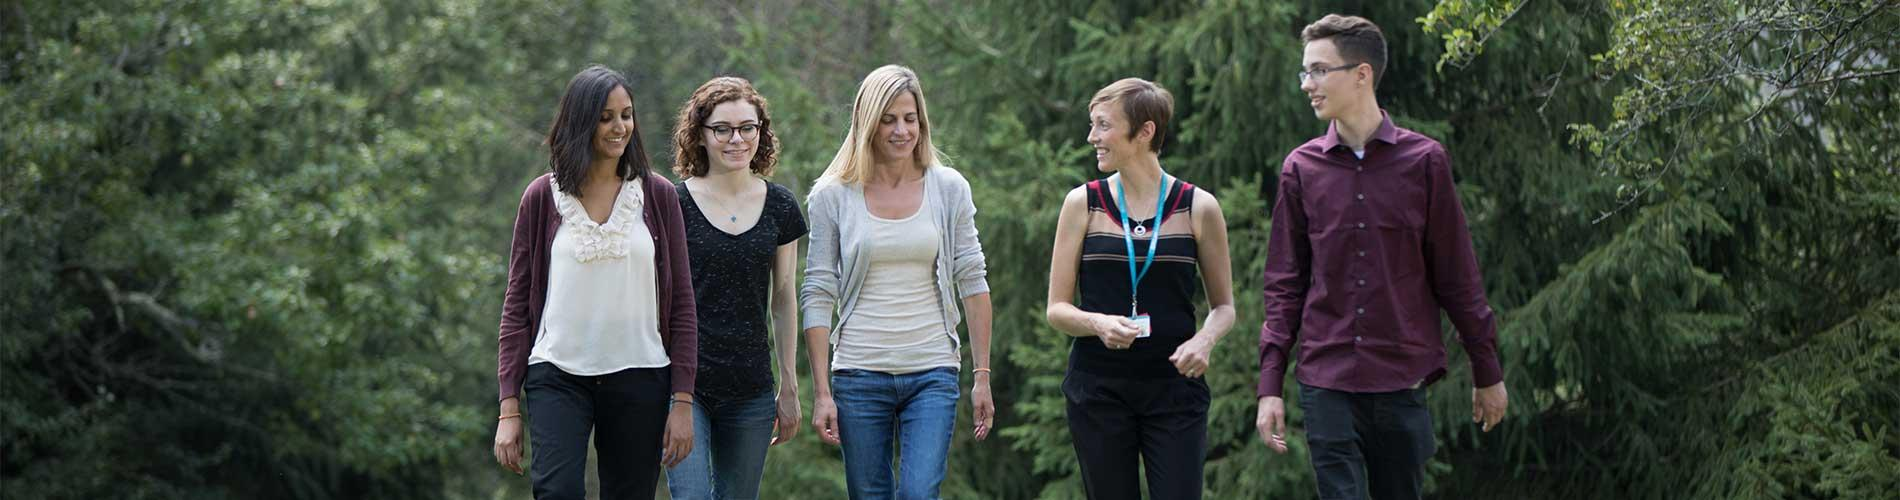 Patients and clinician walk outside